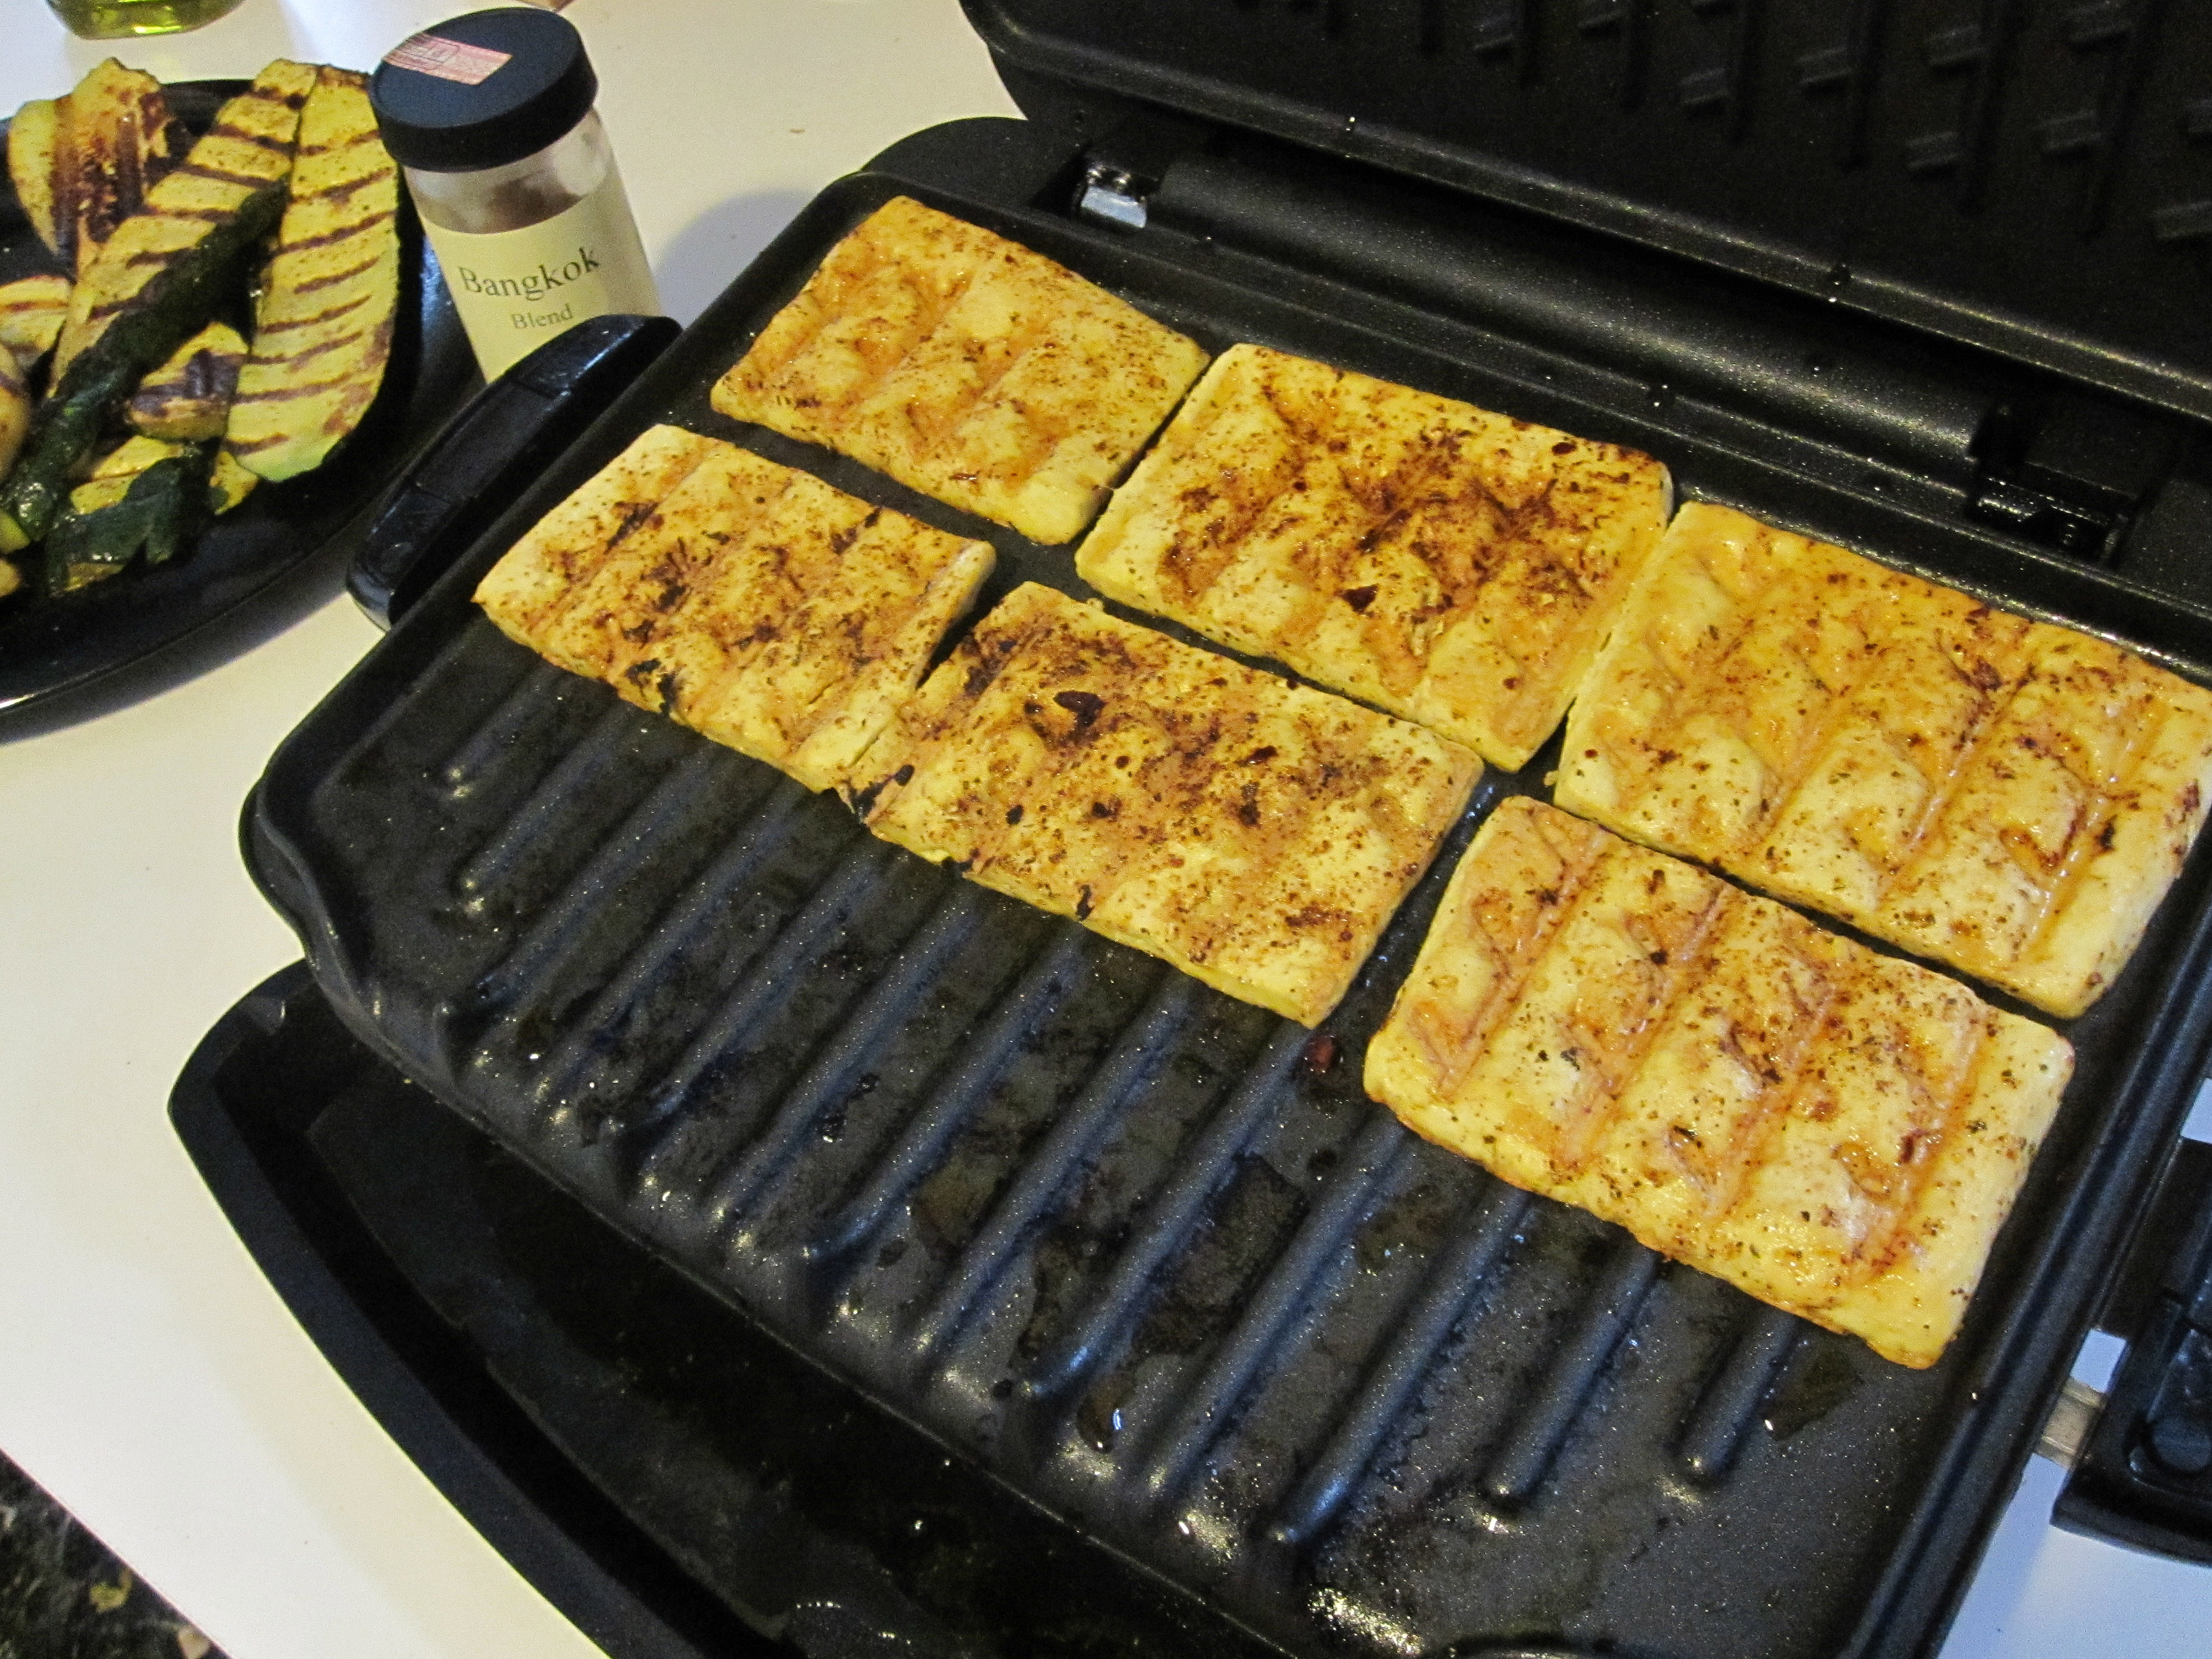 Test Driving My New George Foreman Grill Grilling Vegan Style Killer Bunnies Inc